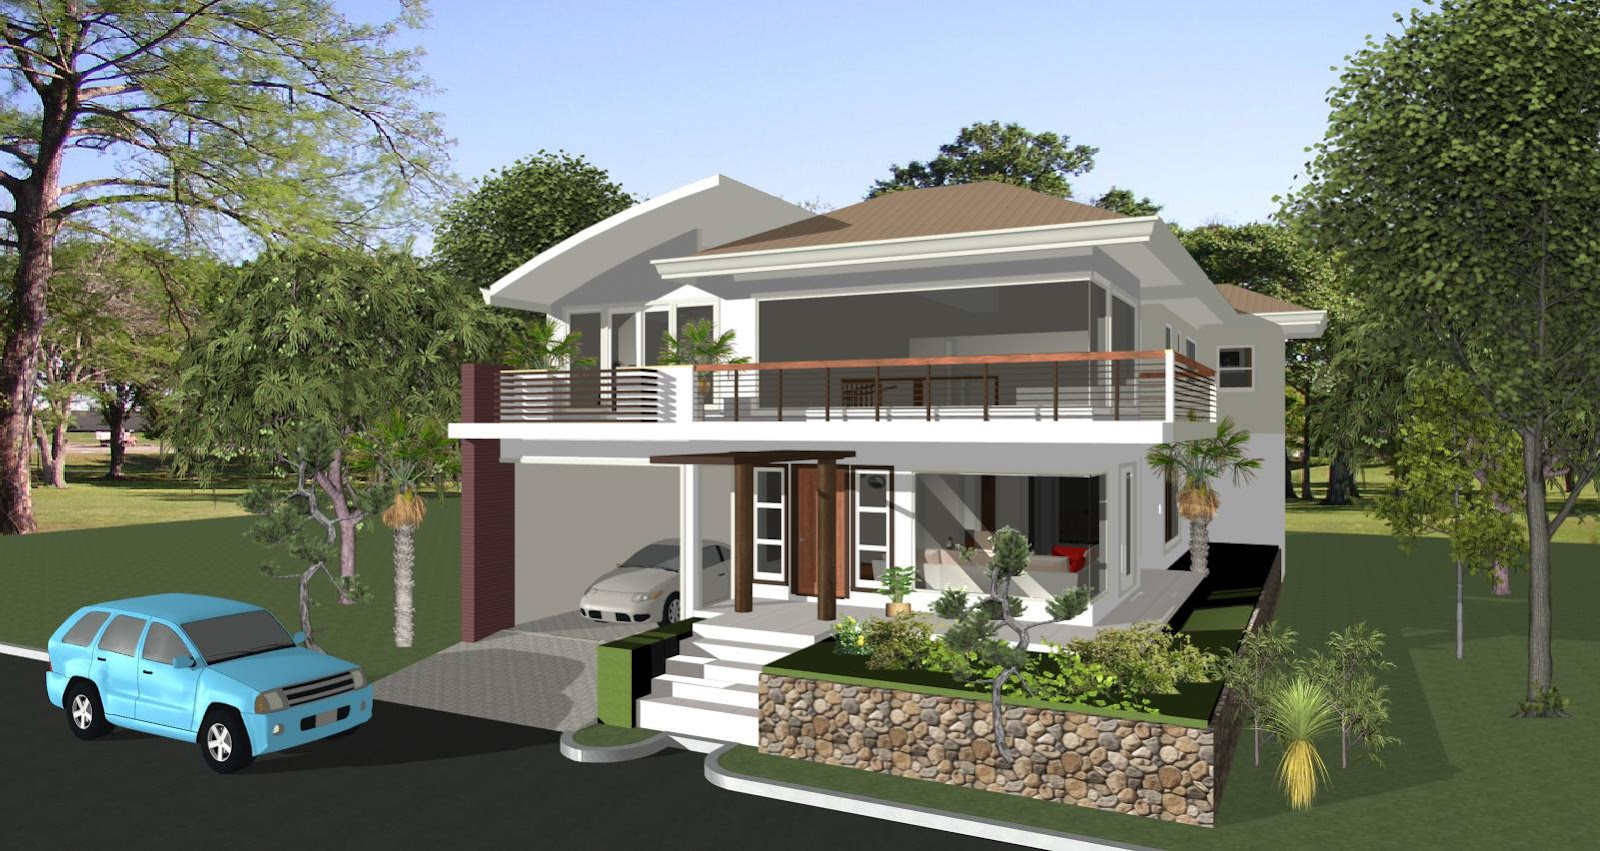 home+building+iloilo+home+plans+iloilo+home+builders+iloilo+home